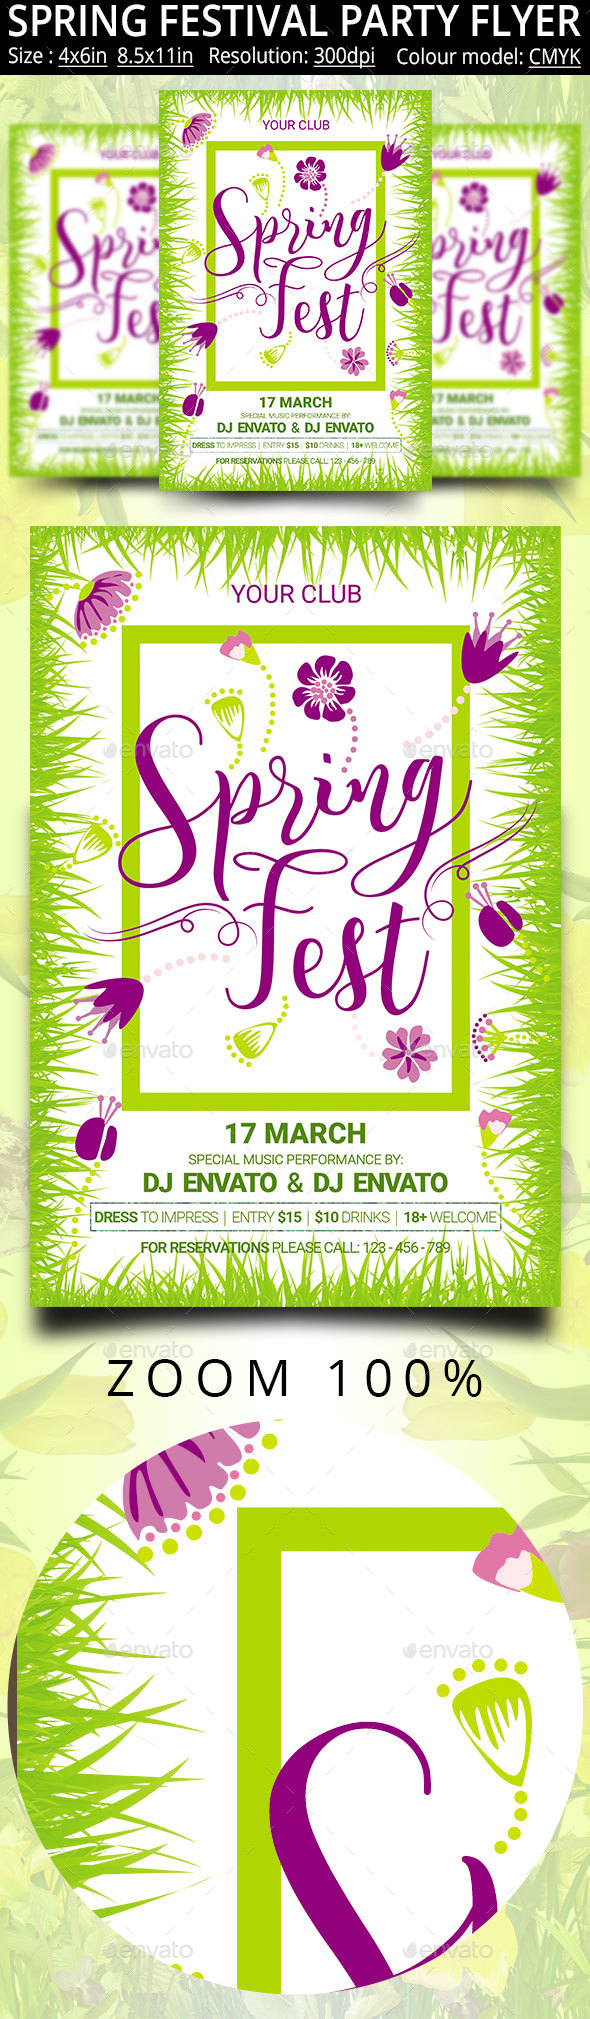 Spring Festival Party Flyer Poster - Clubs & Parties Events